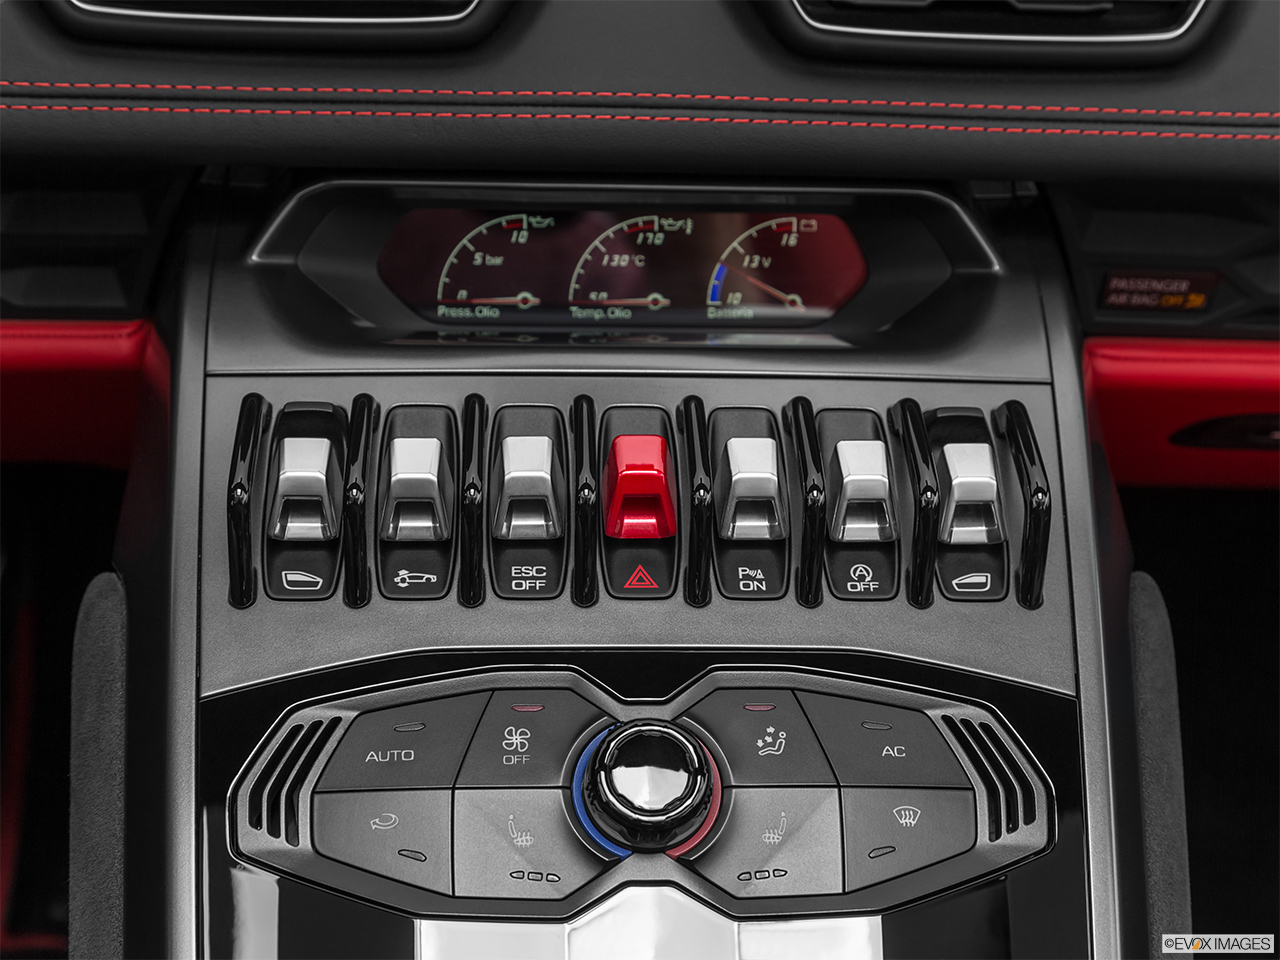 2019 Lamborghini Huracan Spyder LP580-2S Driver's side inside window controls.